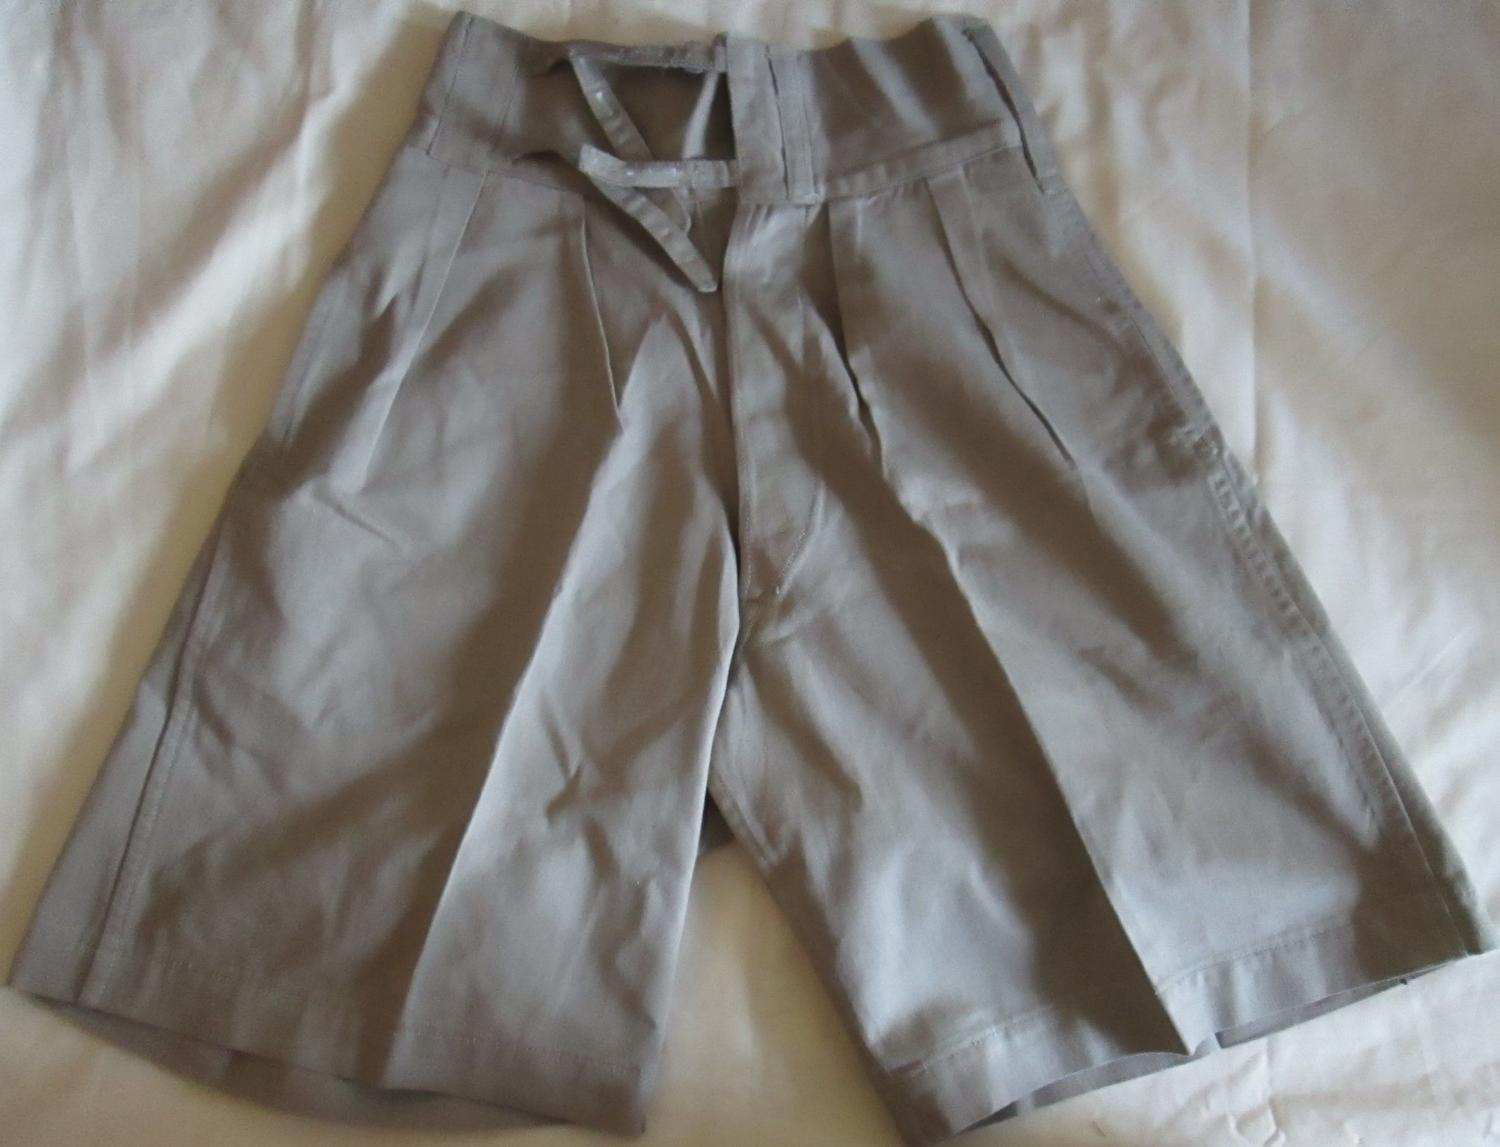 A PAIR OF 1941 DATED KD SHORTS